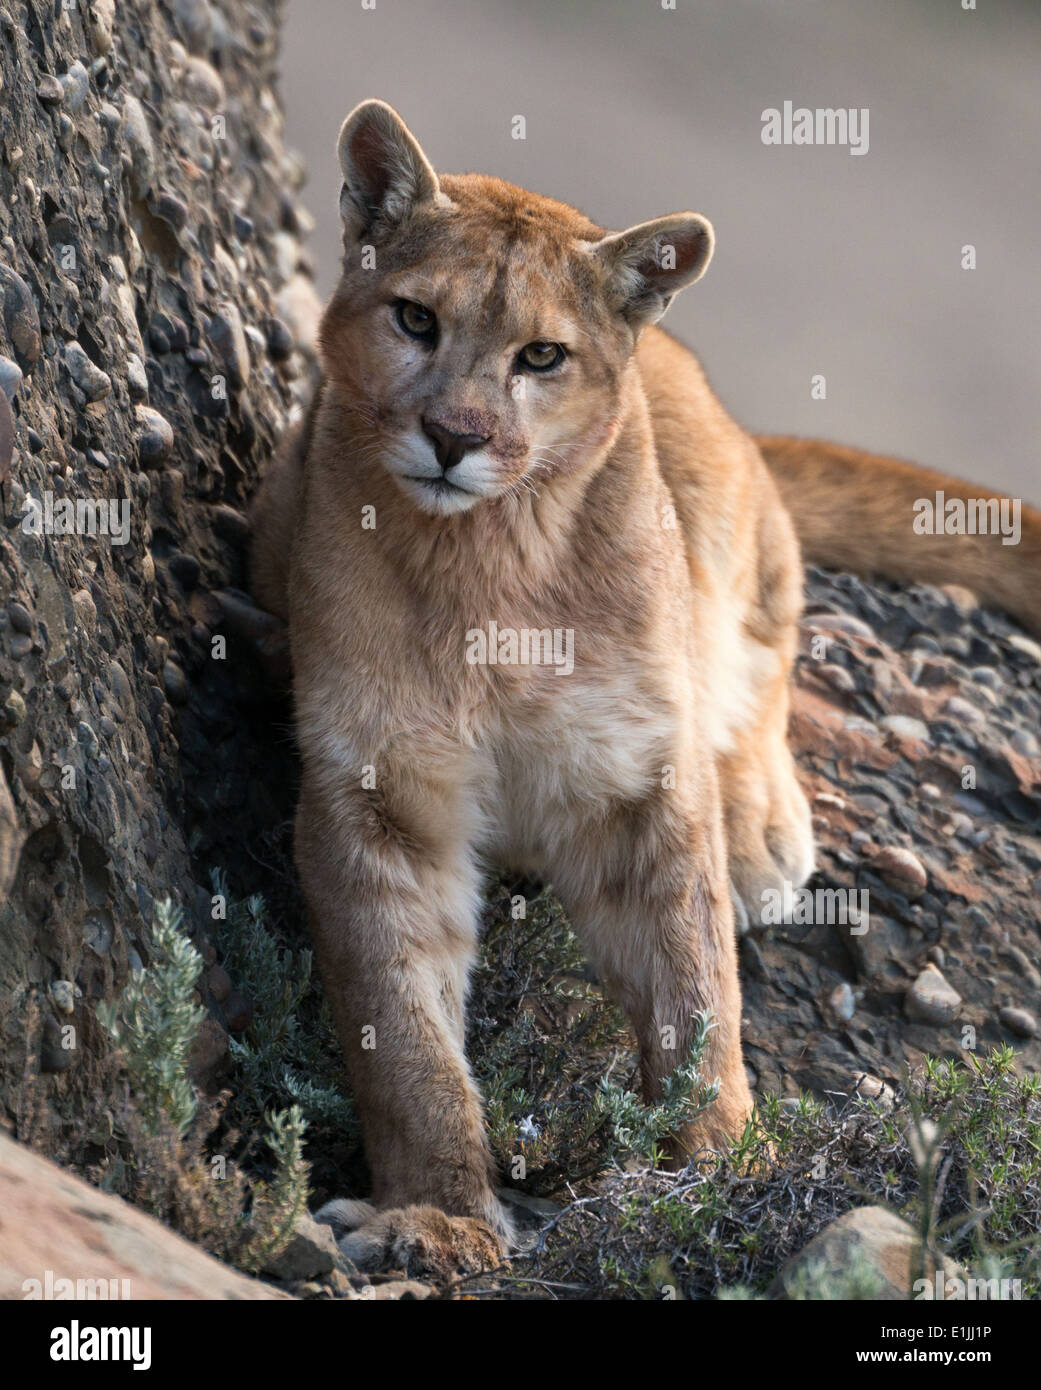 Wild puma from Chile - Stock Image